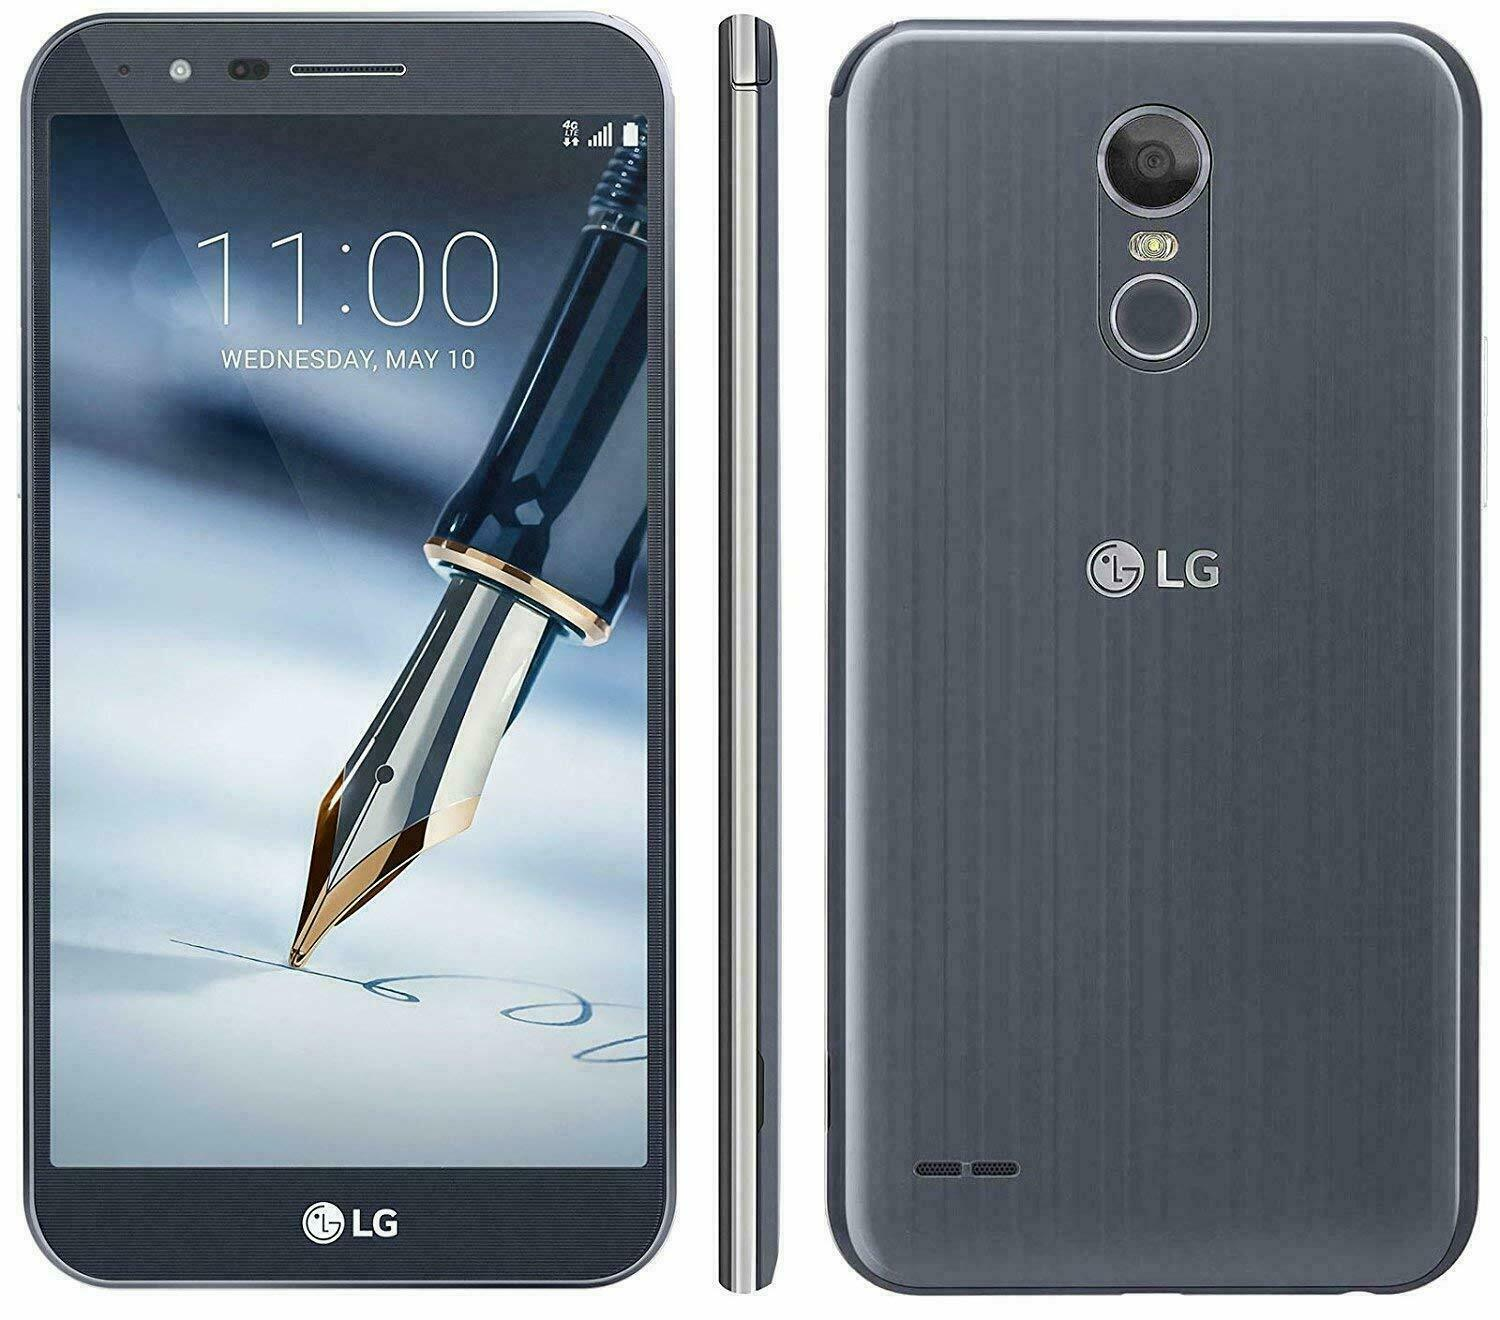 LG STYLO 3 PLUS - 32GB - GSM Unlocked Smartphone 10/10